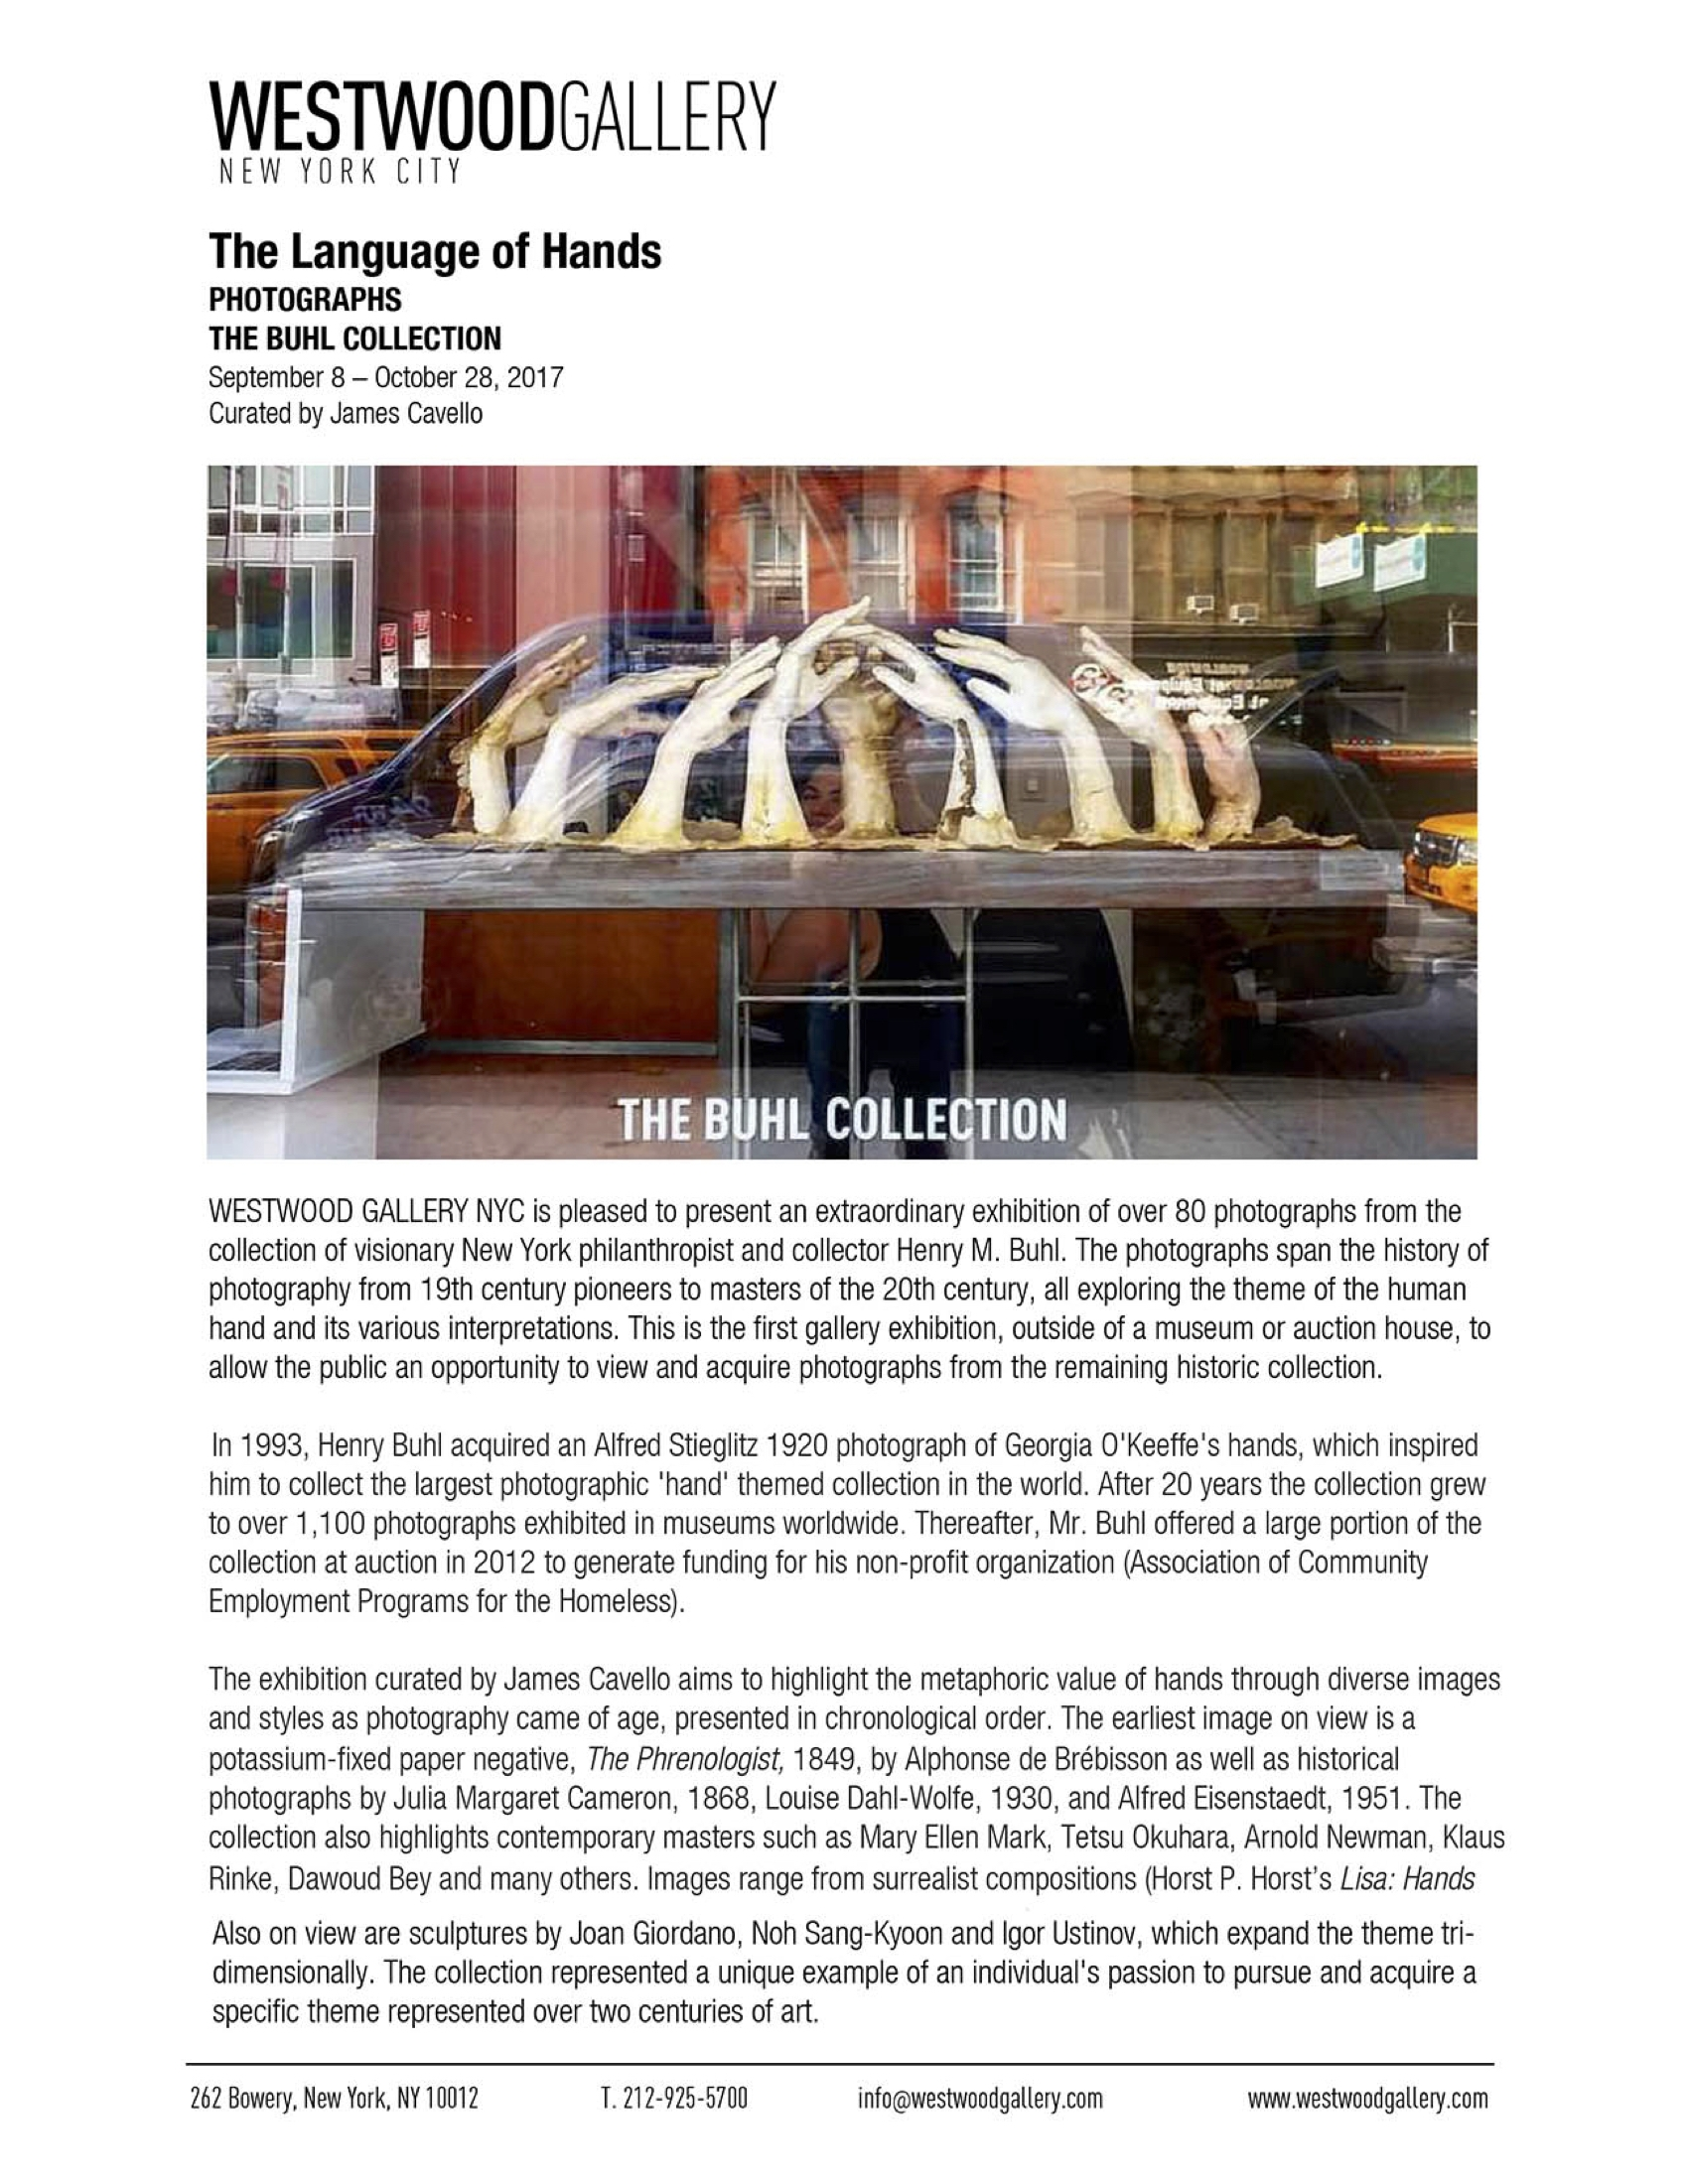 WESTWOOD GALLERY NYC_Press release_The Buhl Collection_Joan Giordano.jpg